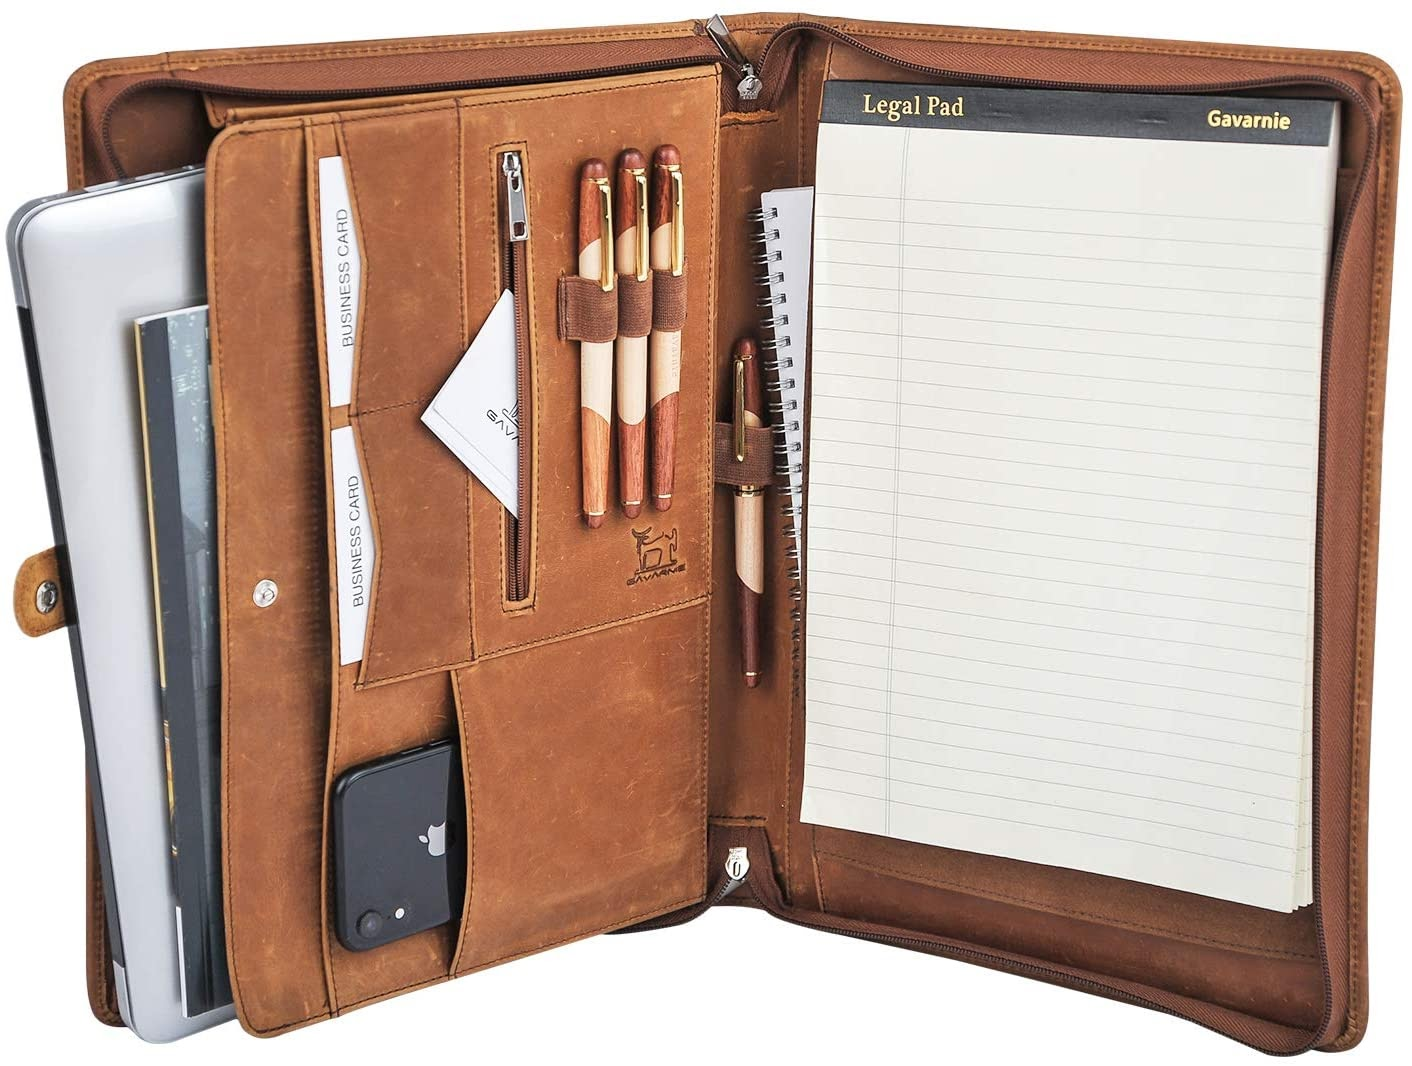 The inside of a brown padfolio filled with paper, pens and technology devices.